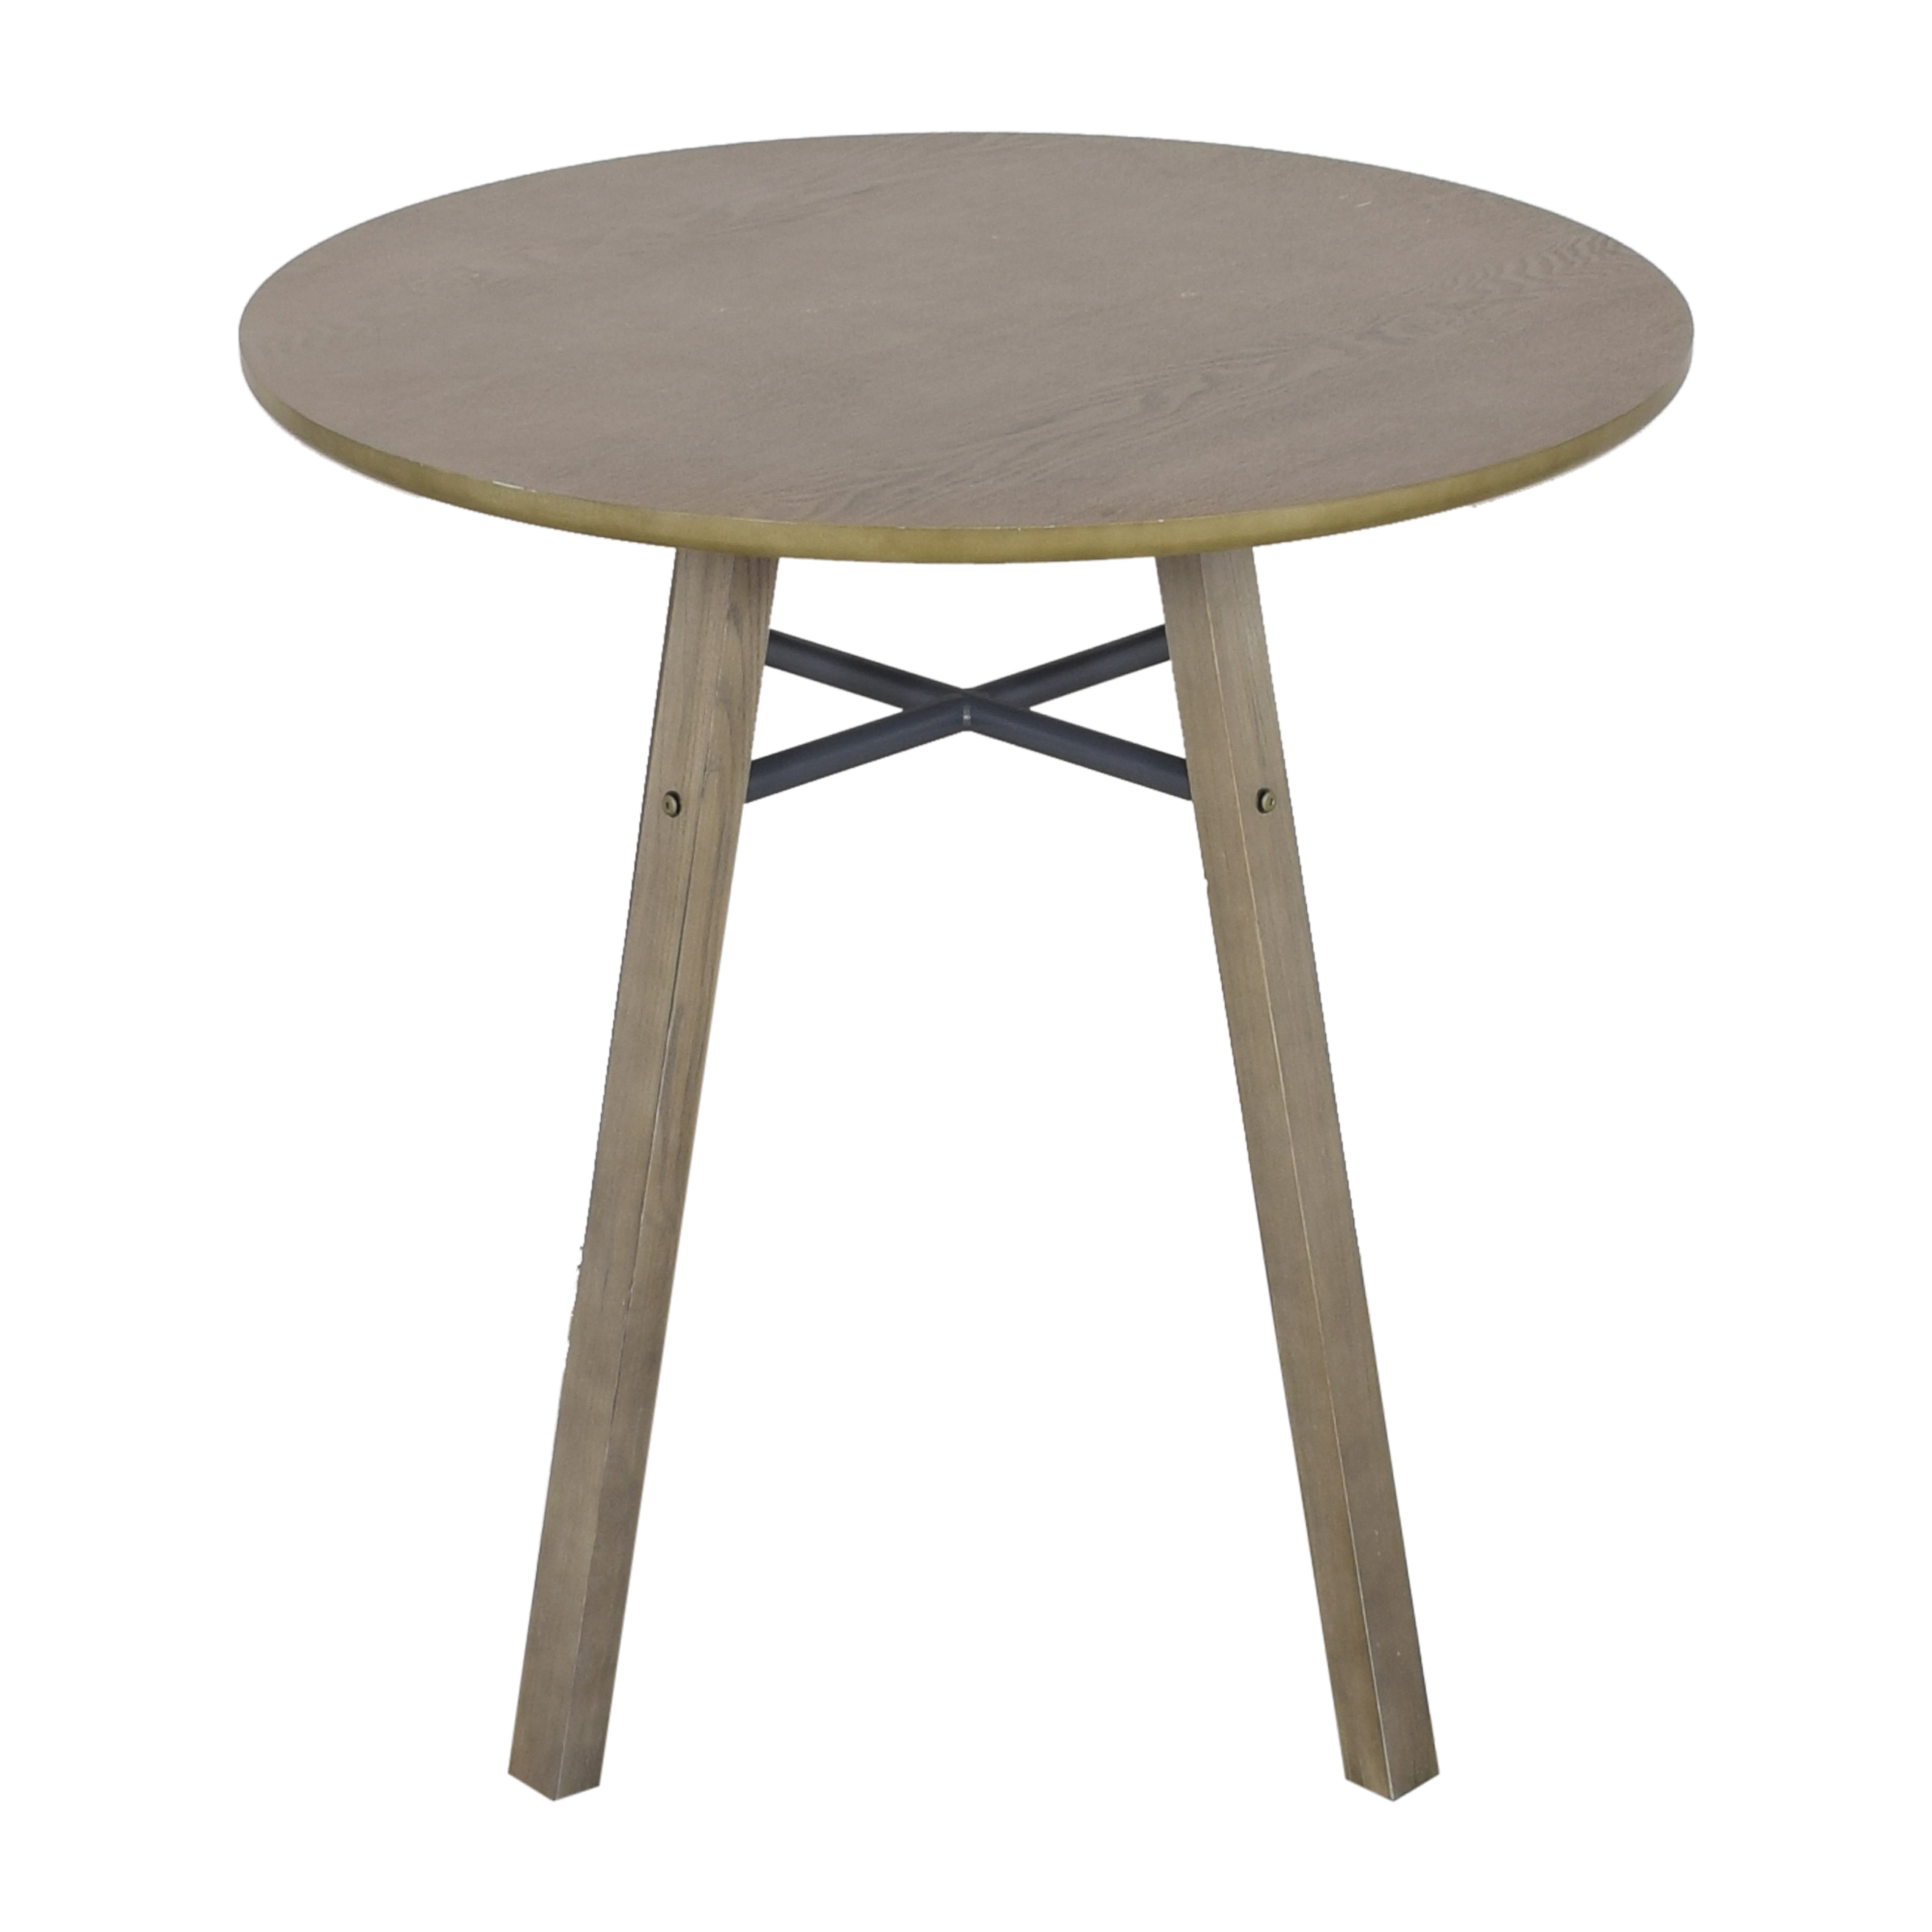 Crate & Barrel Crate & Barrel Bar Height Round Table ct